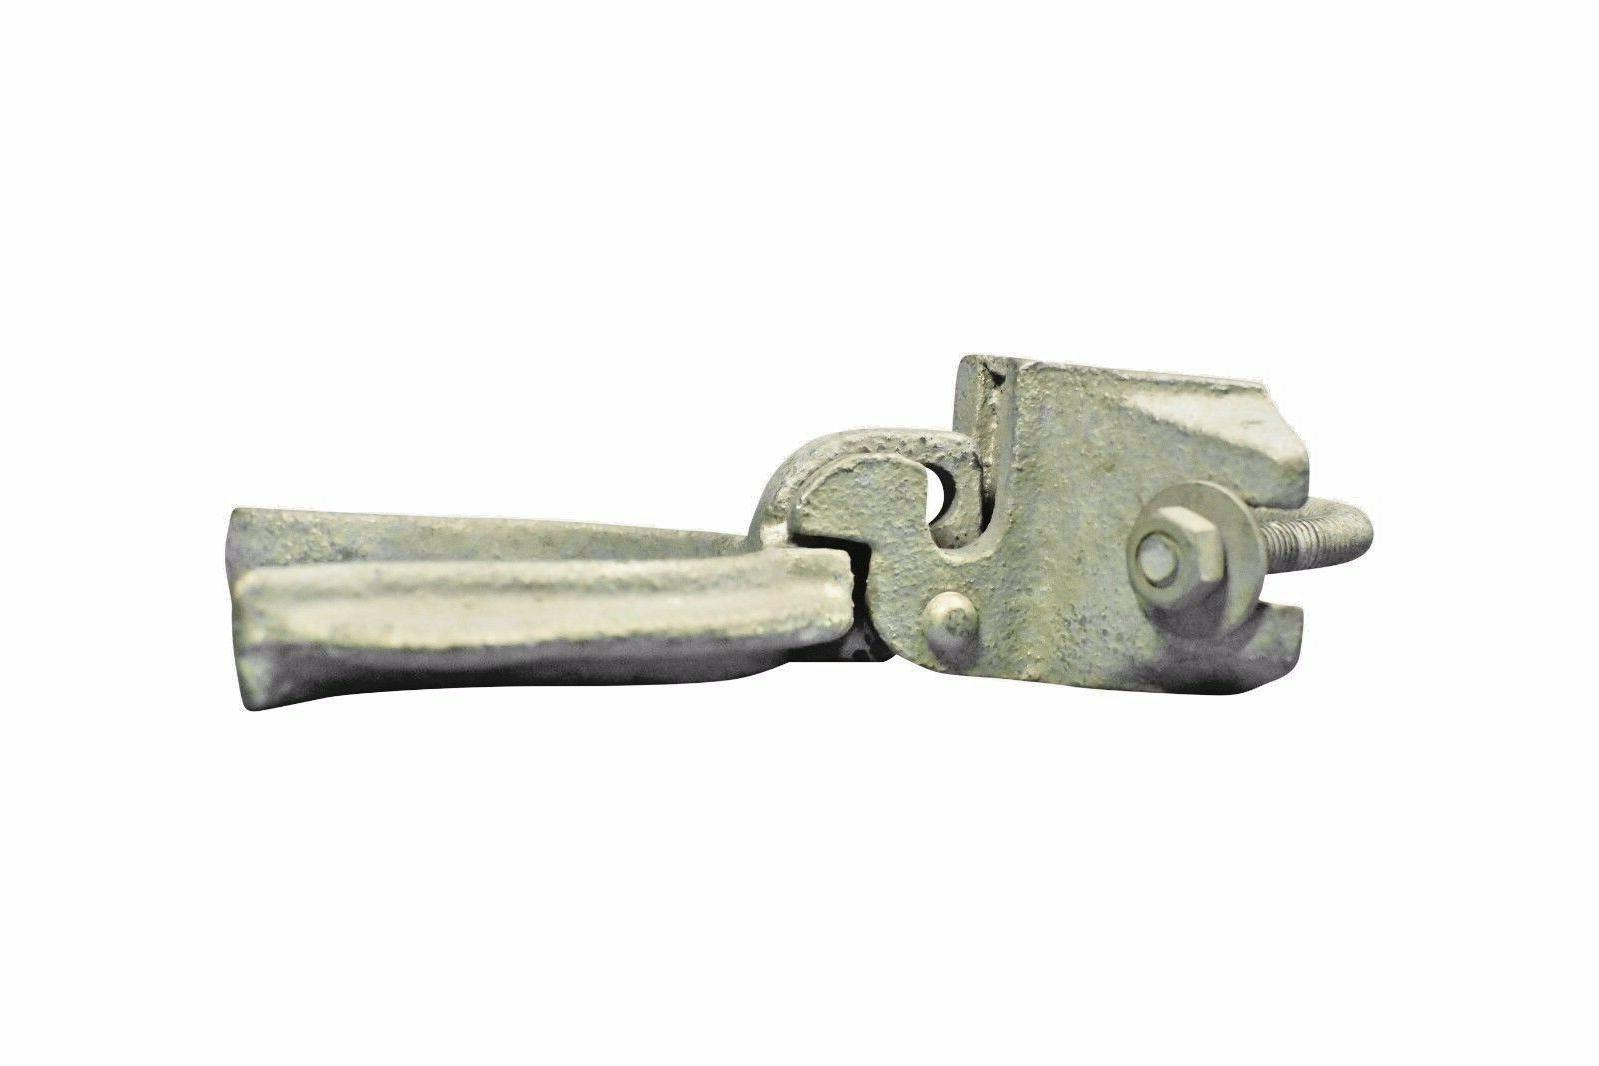 Chain Link Duty Gate Latch Set Locking Gate Hardware